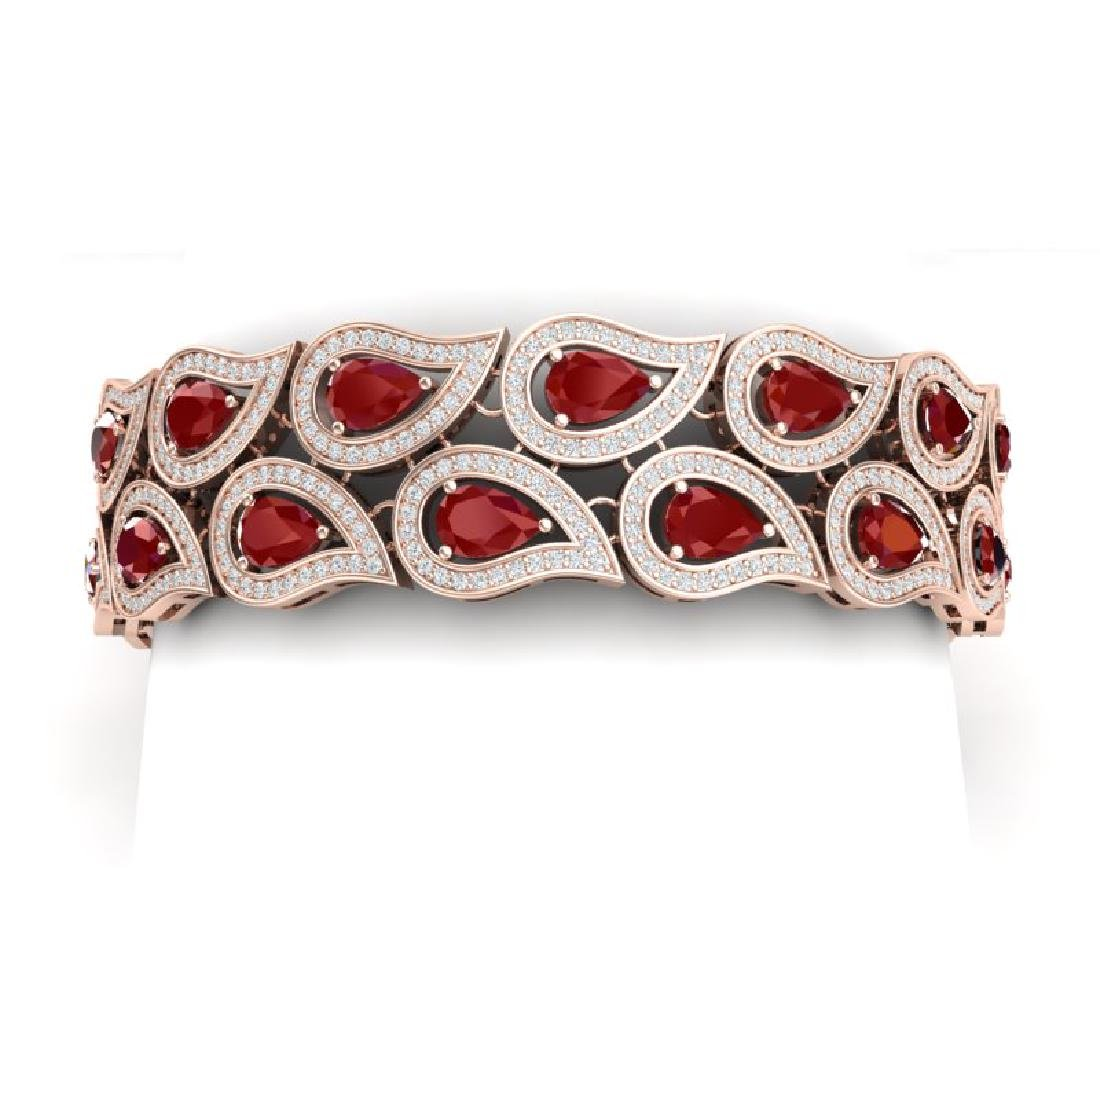 20.1 CTW Royalty Designer Ruby & VS Diamond Bracelet